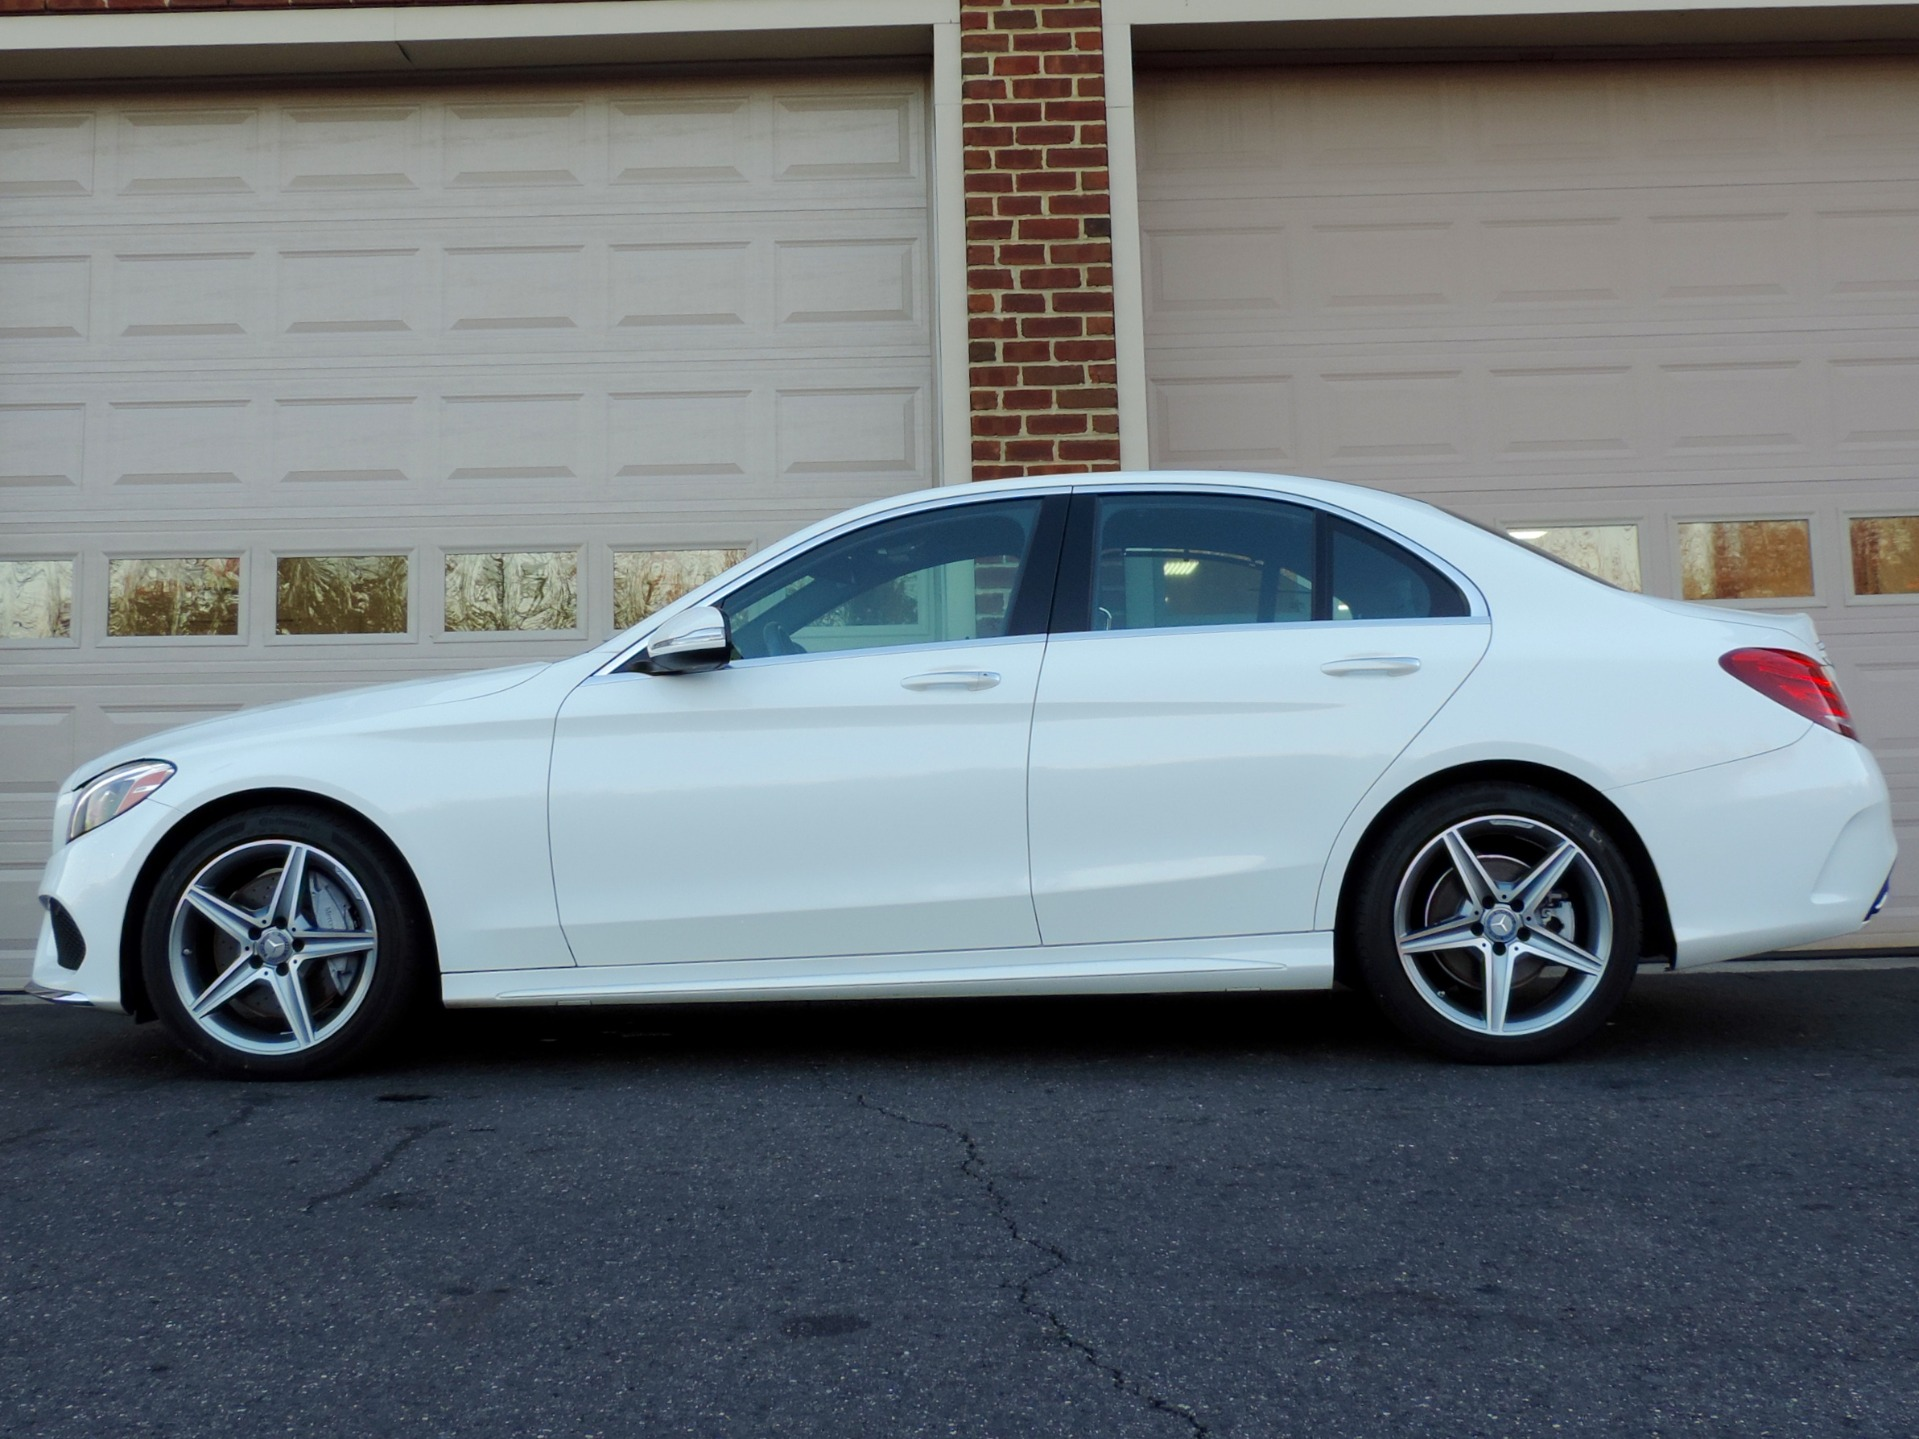 2015 mercedes benz c class c 300 4matic stock 022925 for for Mercedes benz c class 300 for sale